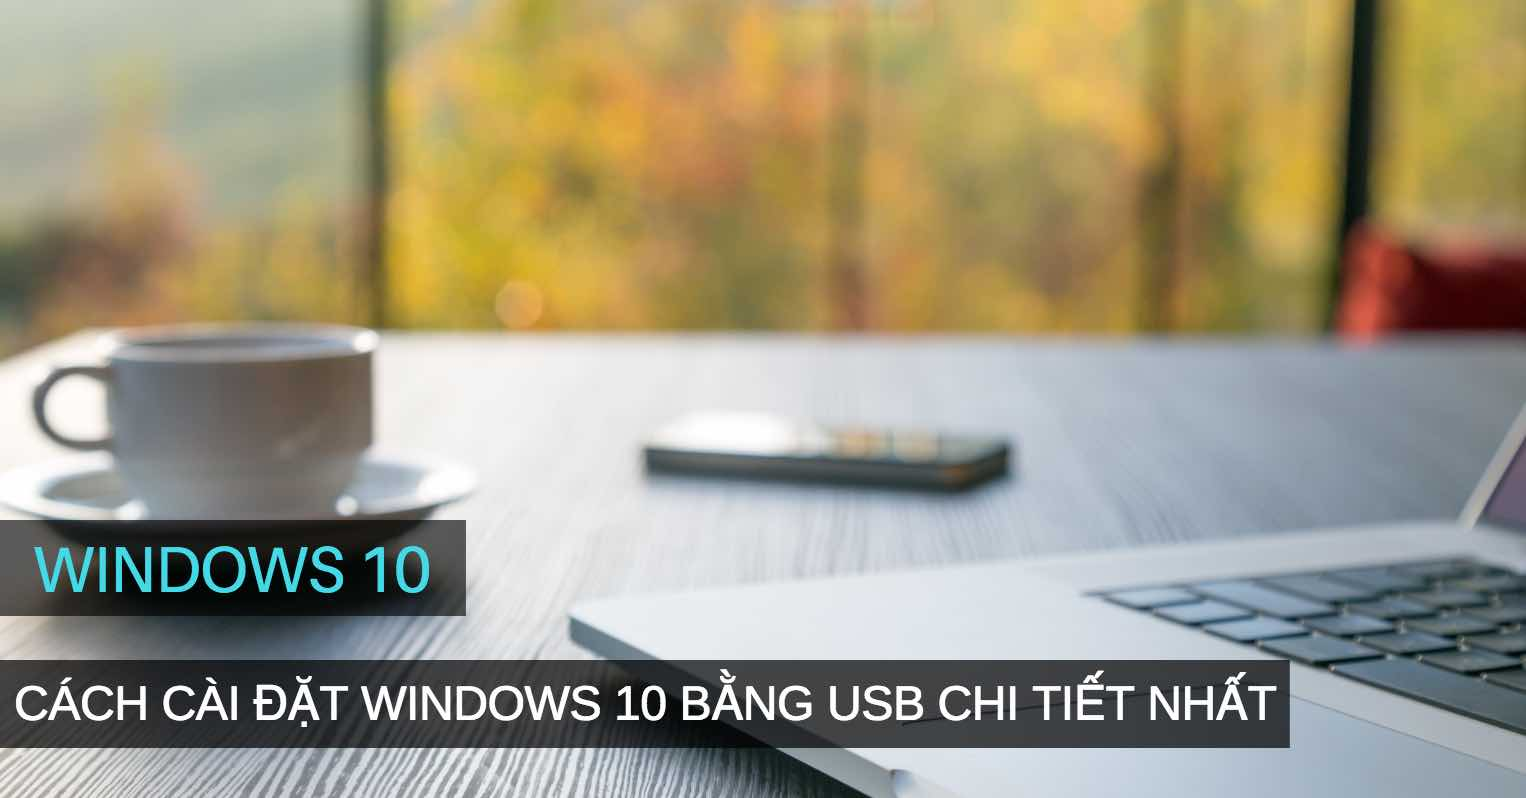 cai dat windows 10 bang usb